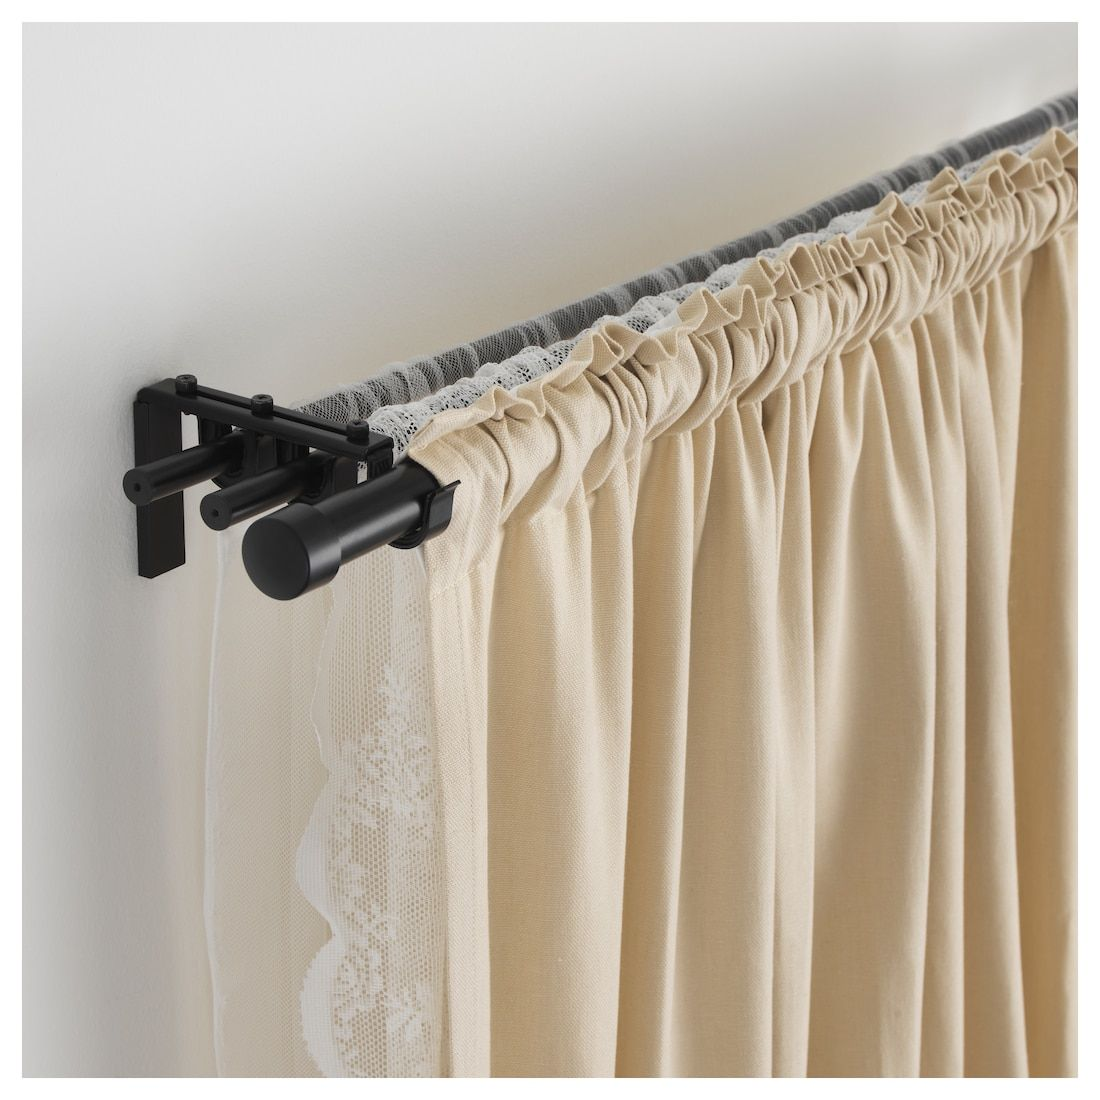 Hugad Curtain Rod Black 47 83 Double Rod Curtains Double